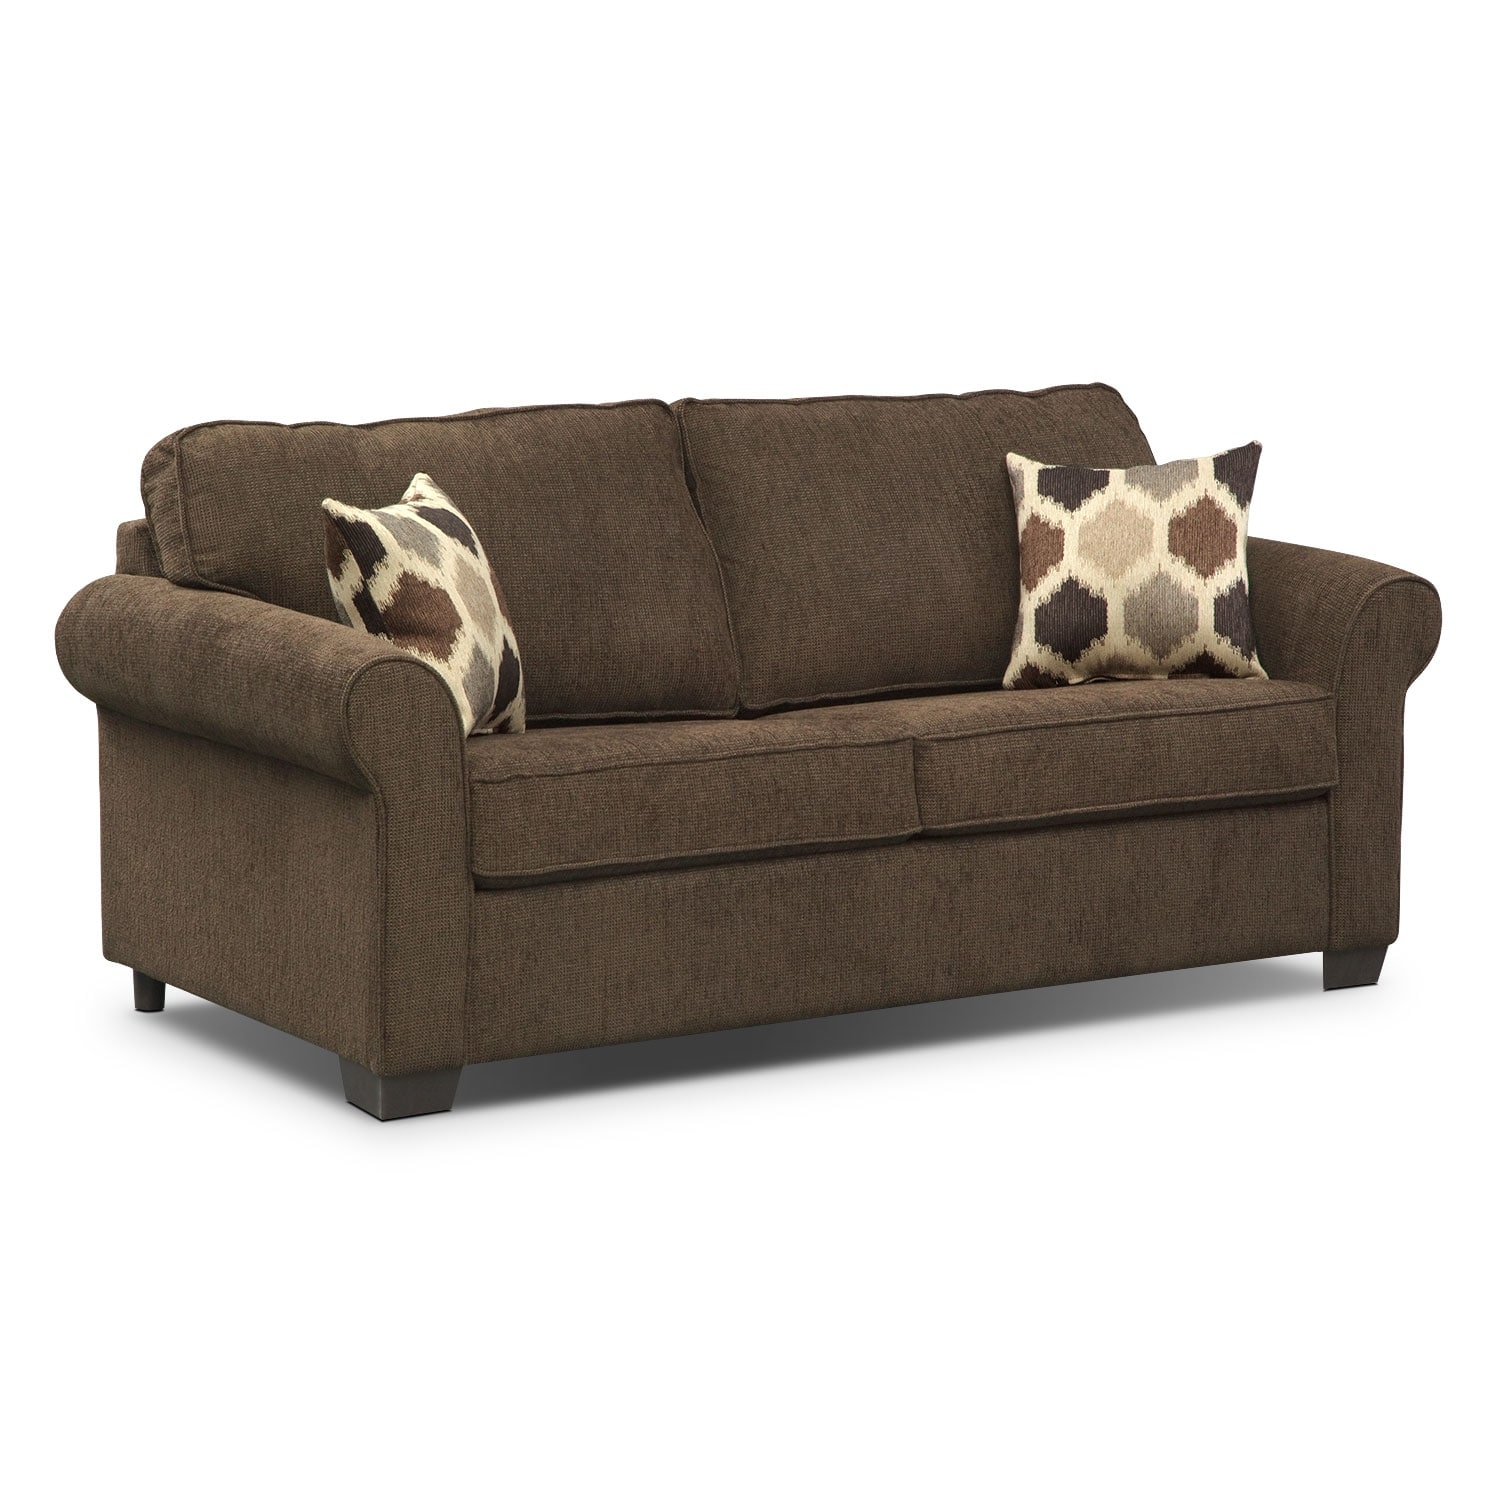 Fletcher II Queen Memory Foam Sleeper Sofa